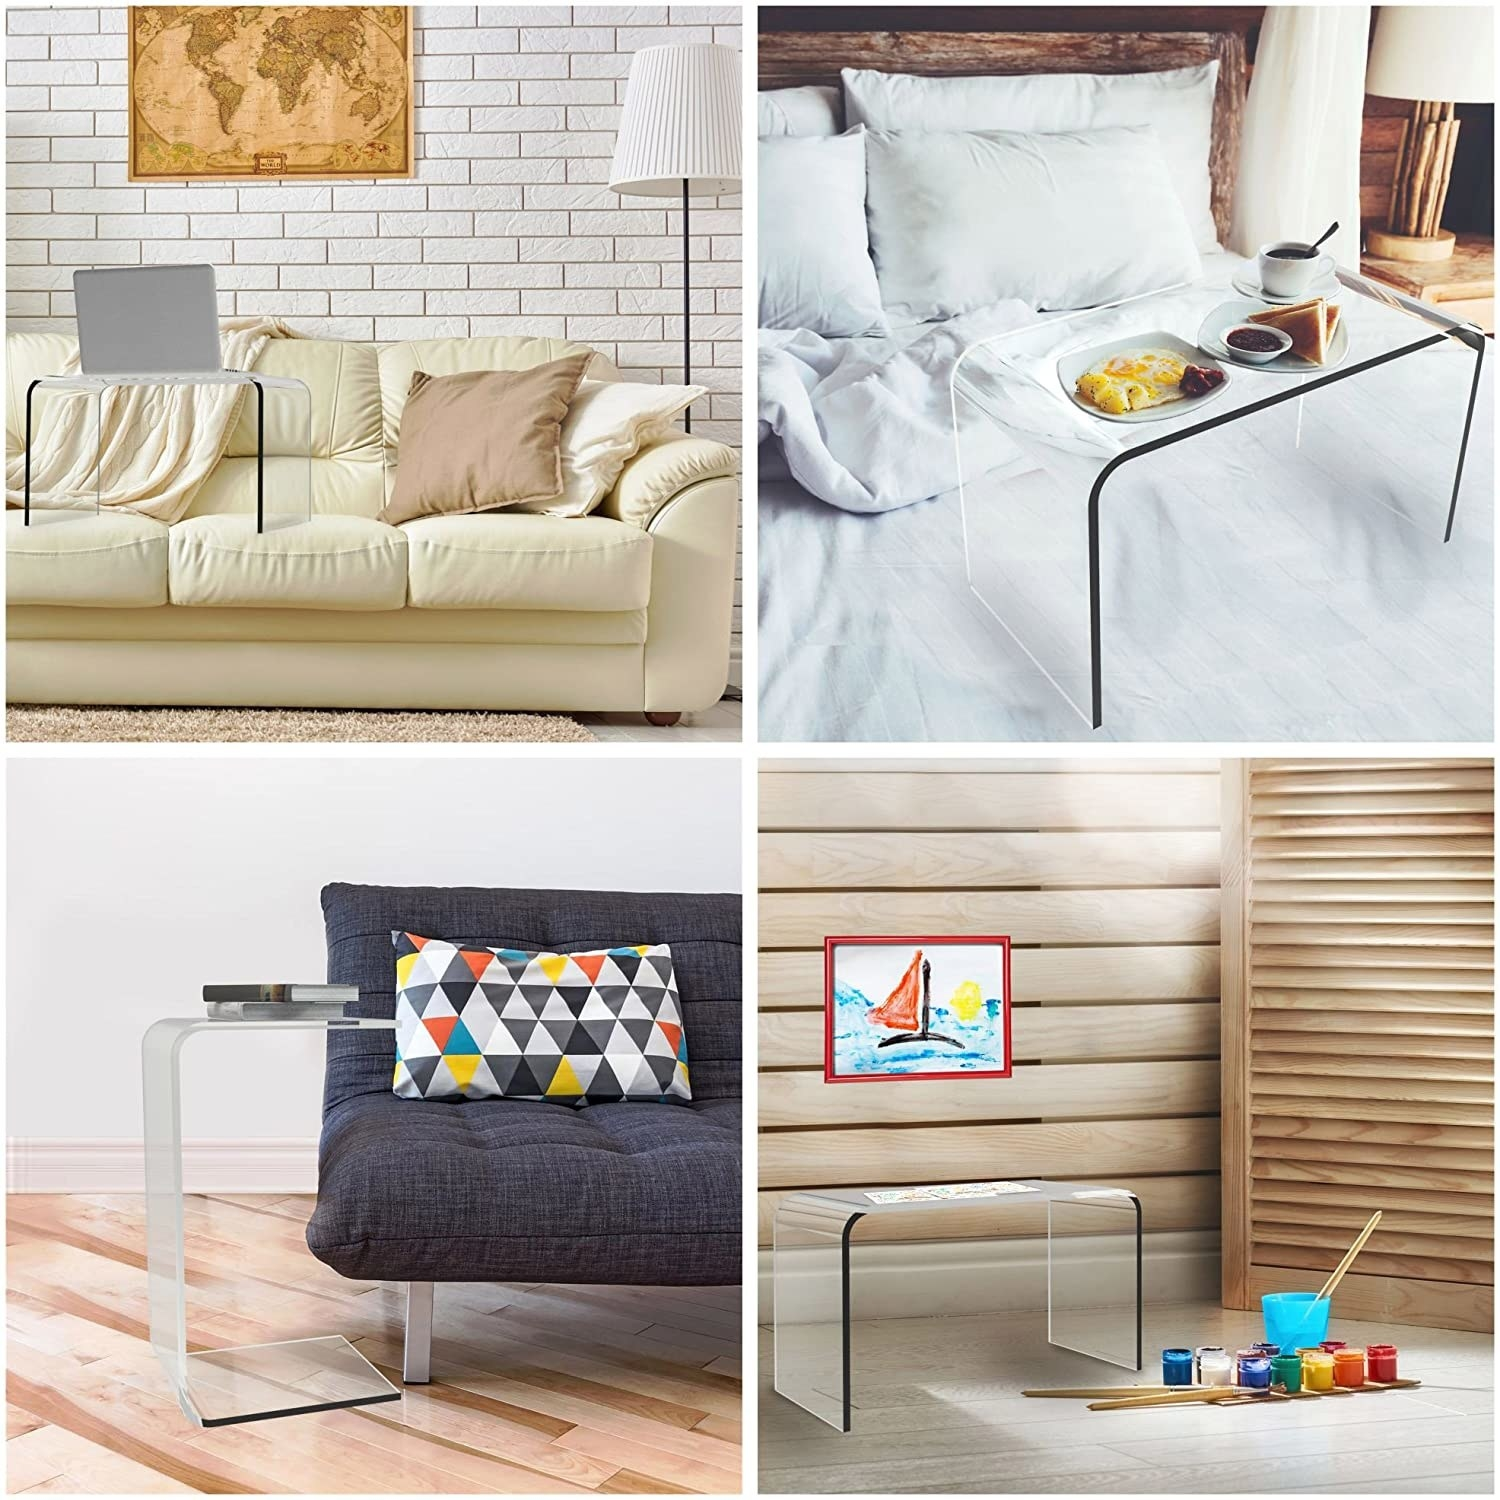 the table being used on a couch, on a bed, next to a couch, and in a playroom